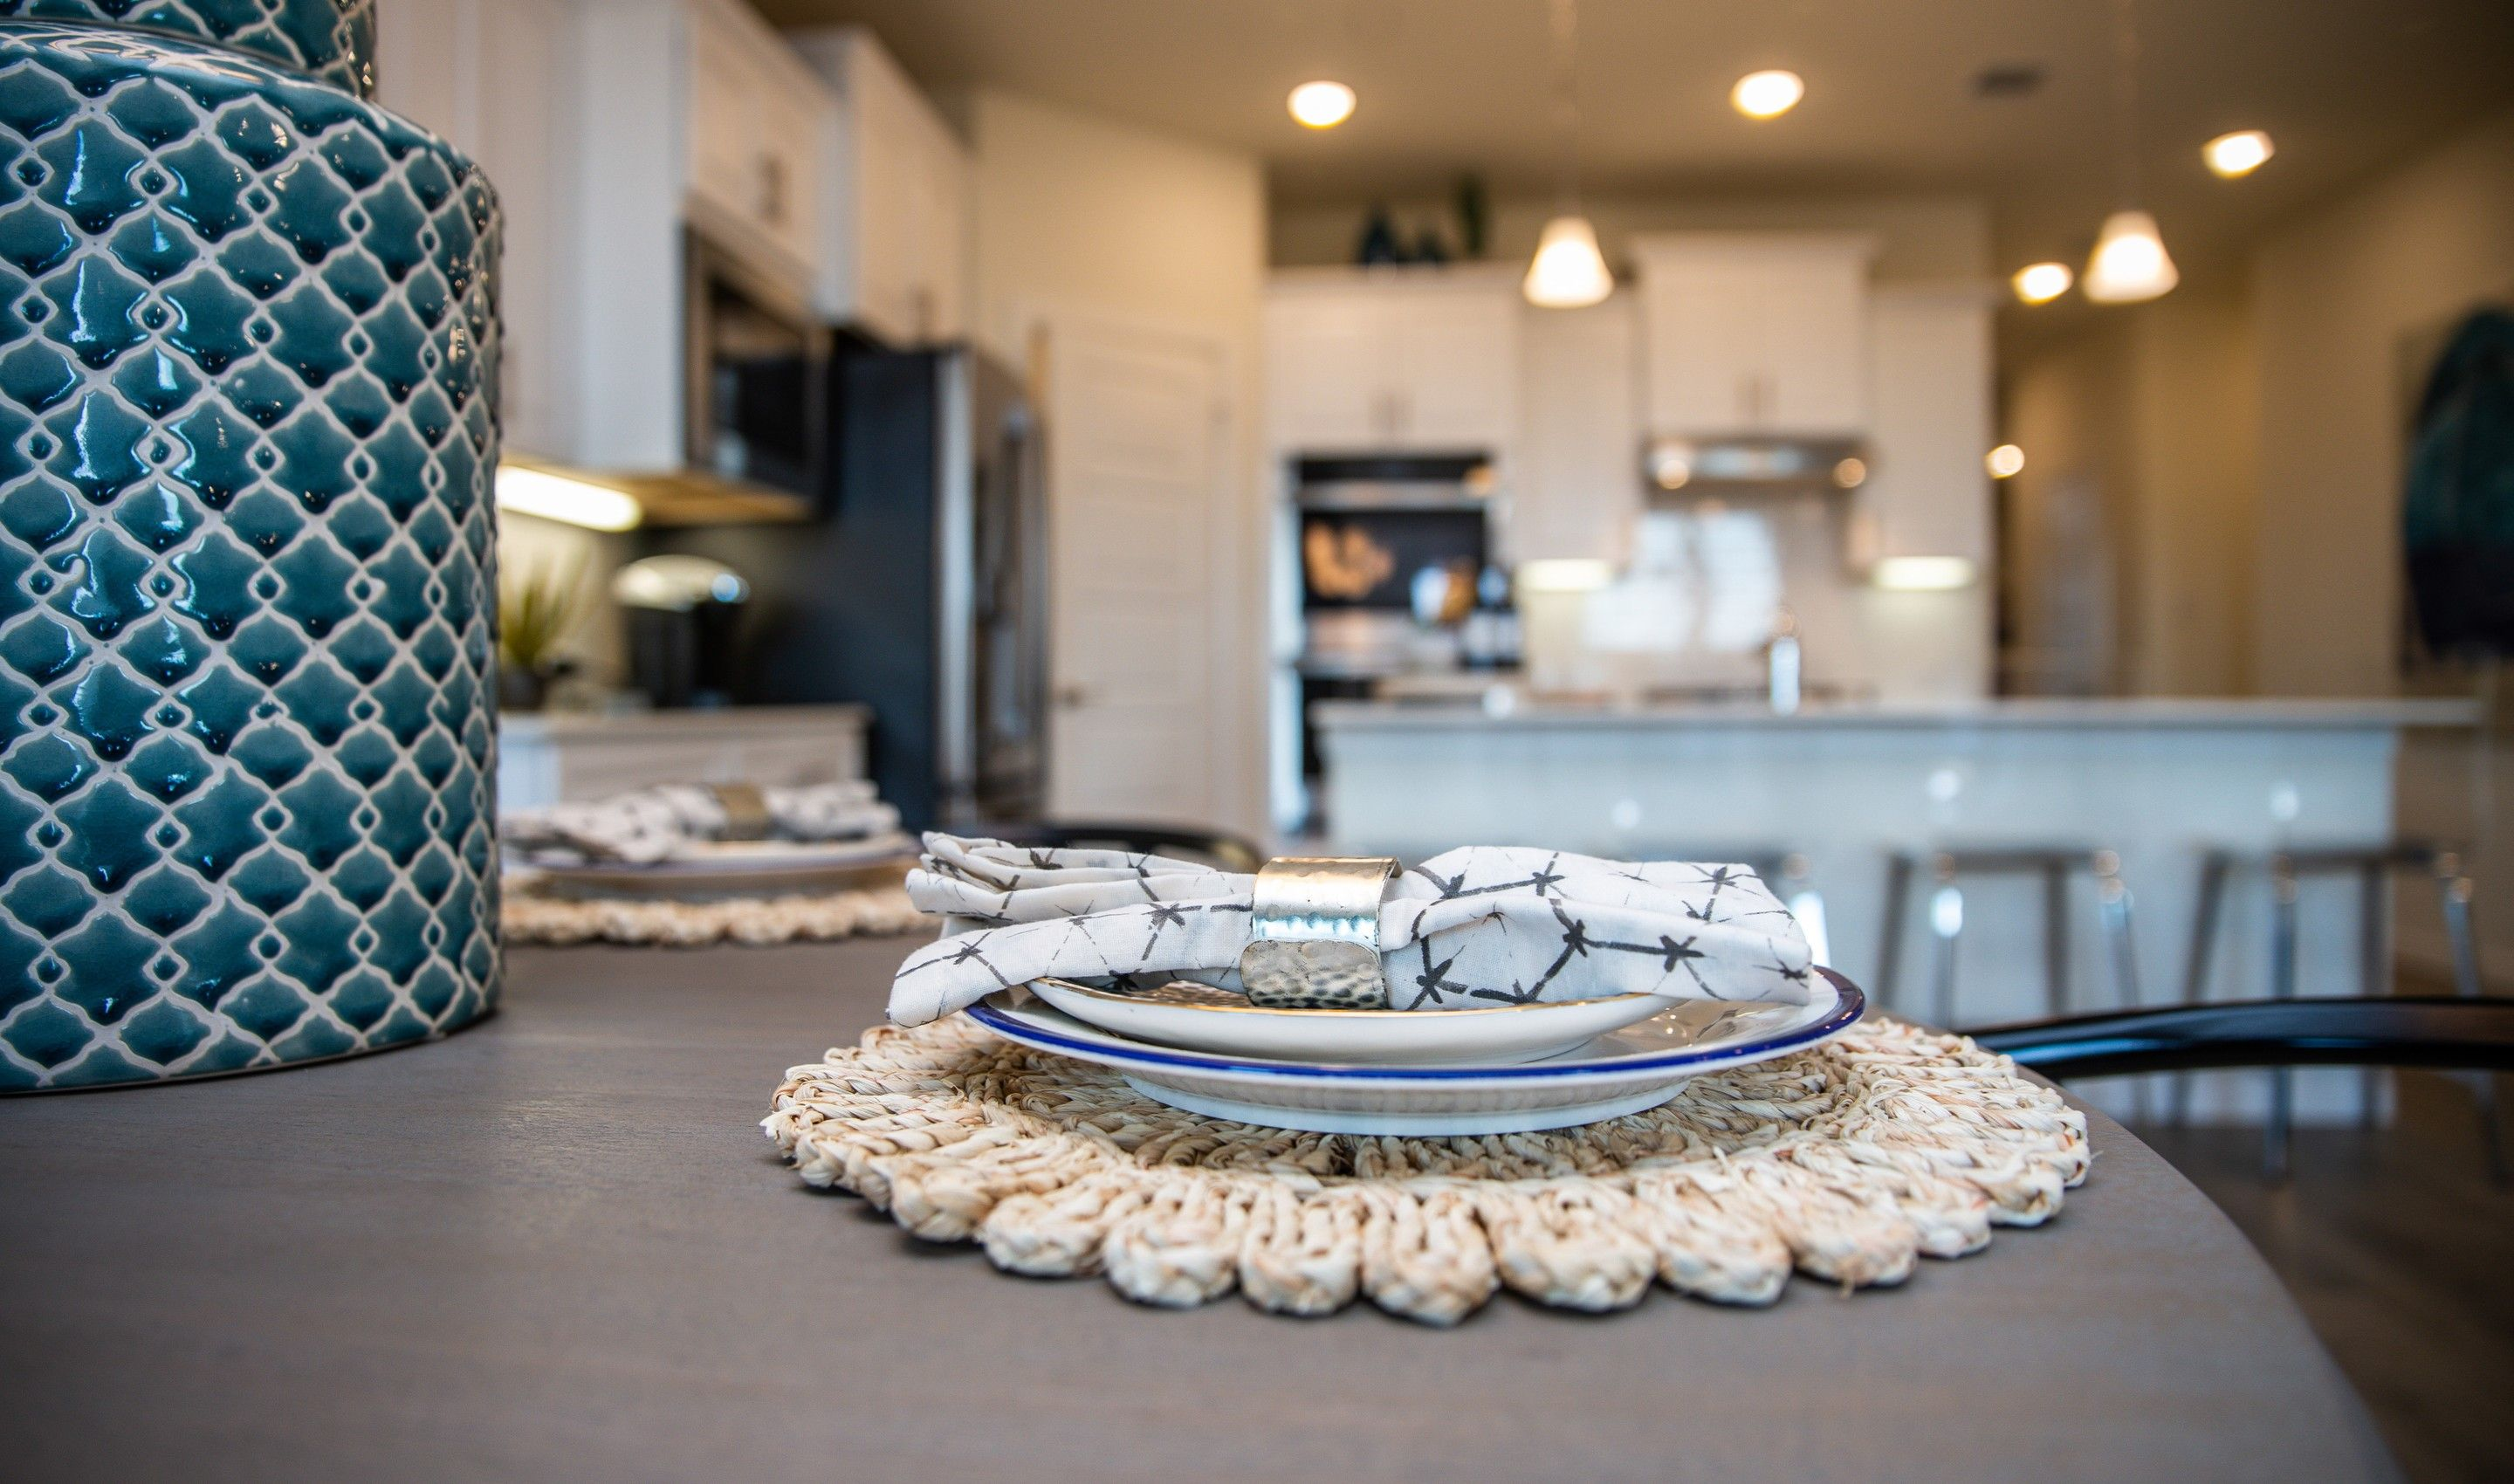 Kitchen featured in the Rockford By K. Hovnanian® Homes in Fort Worth, TX